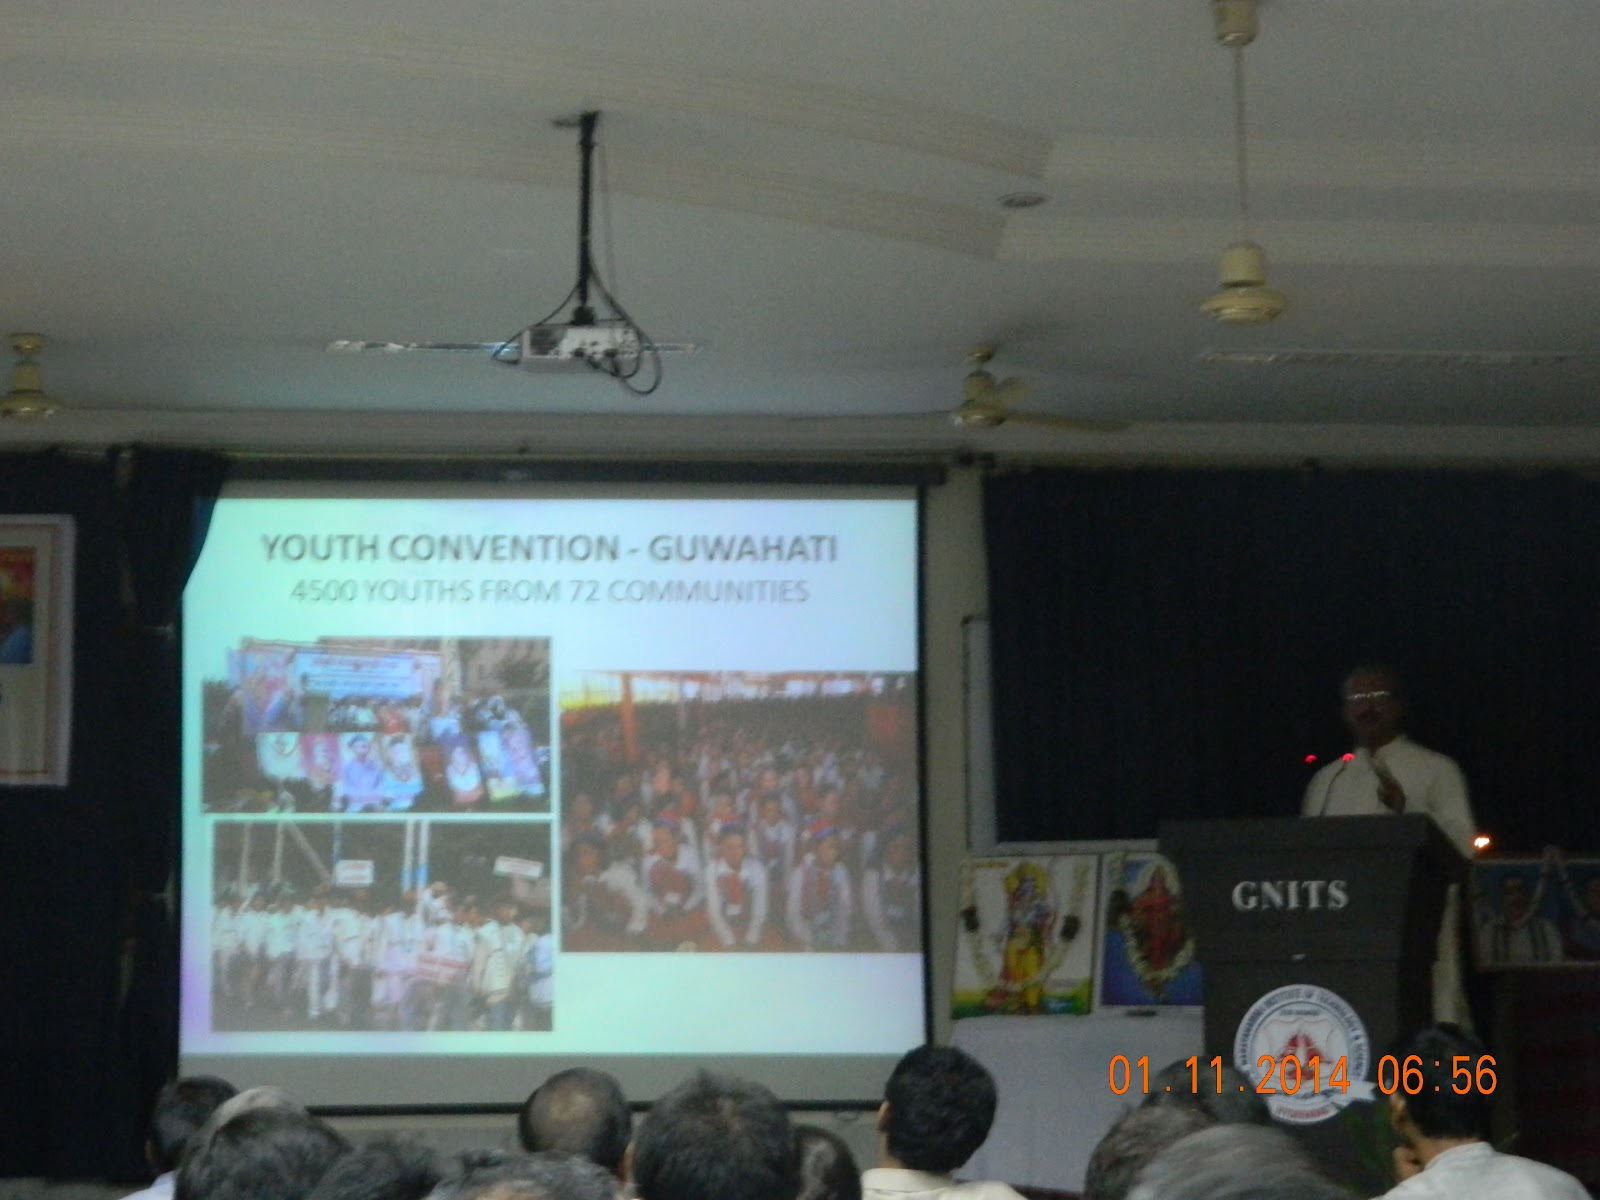 Youth Convention - Guwahati Image